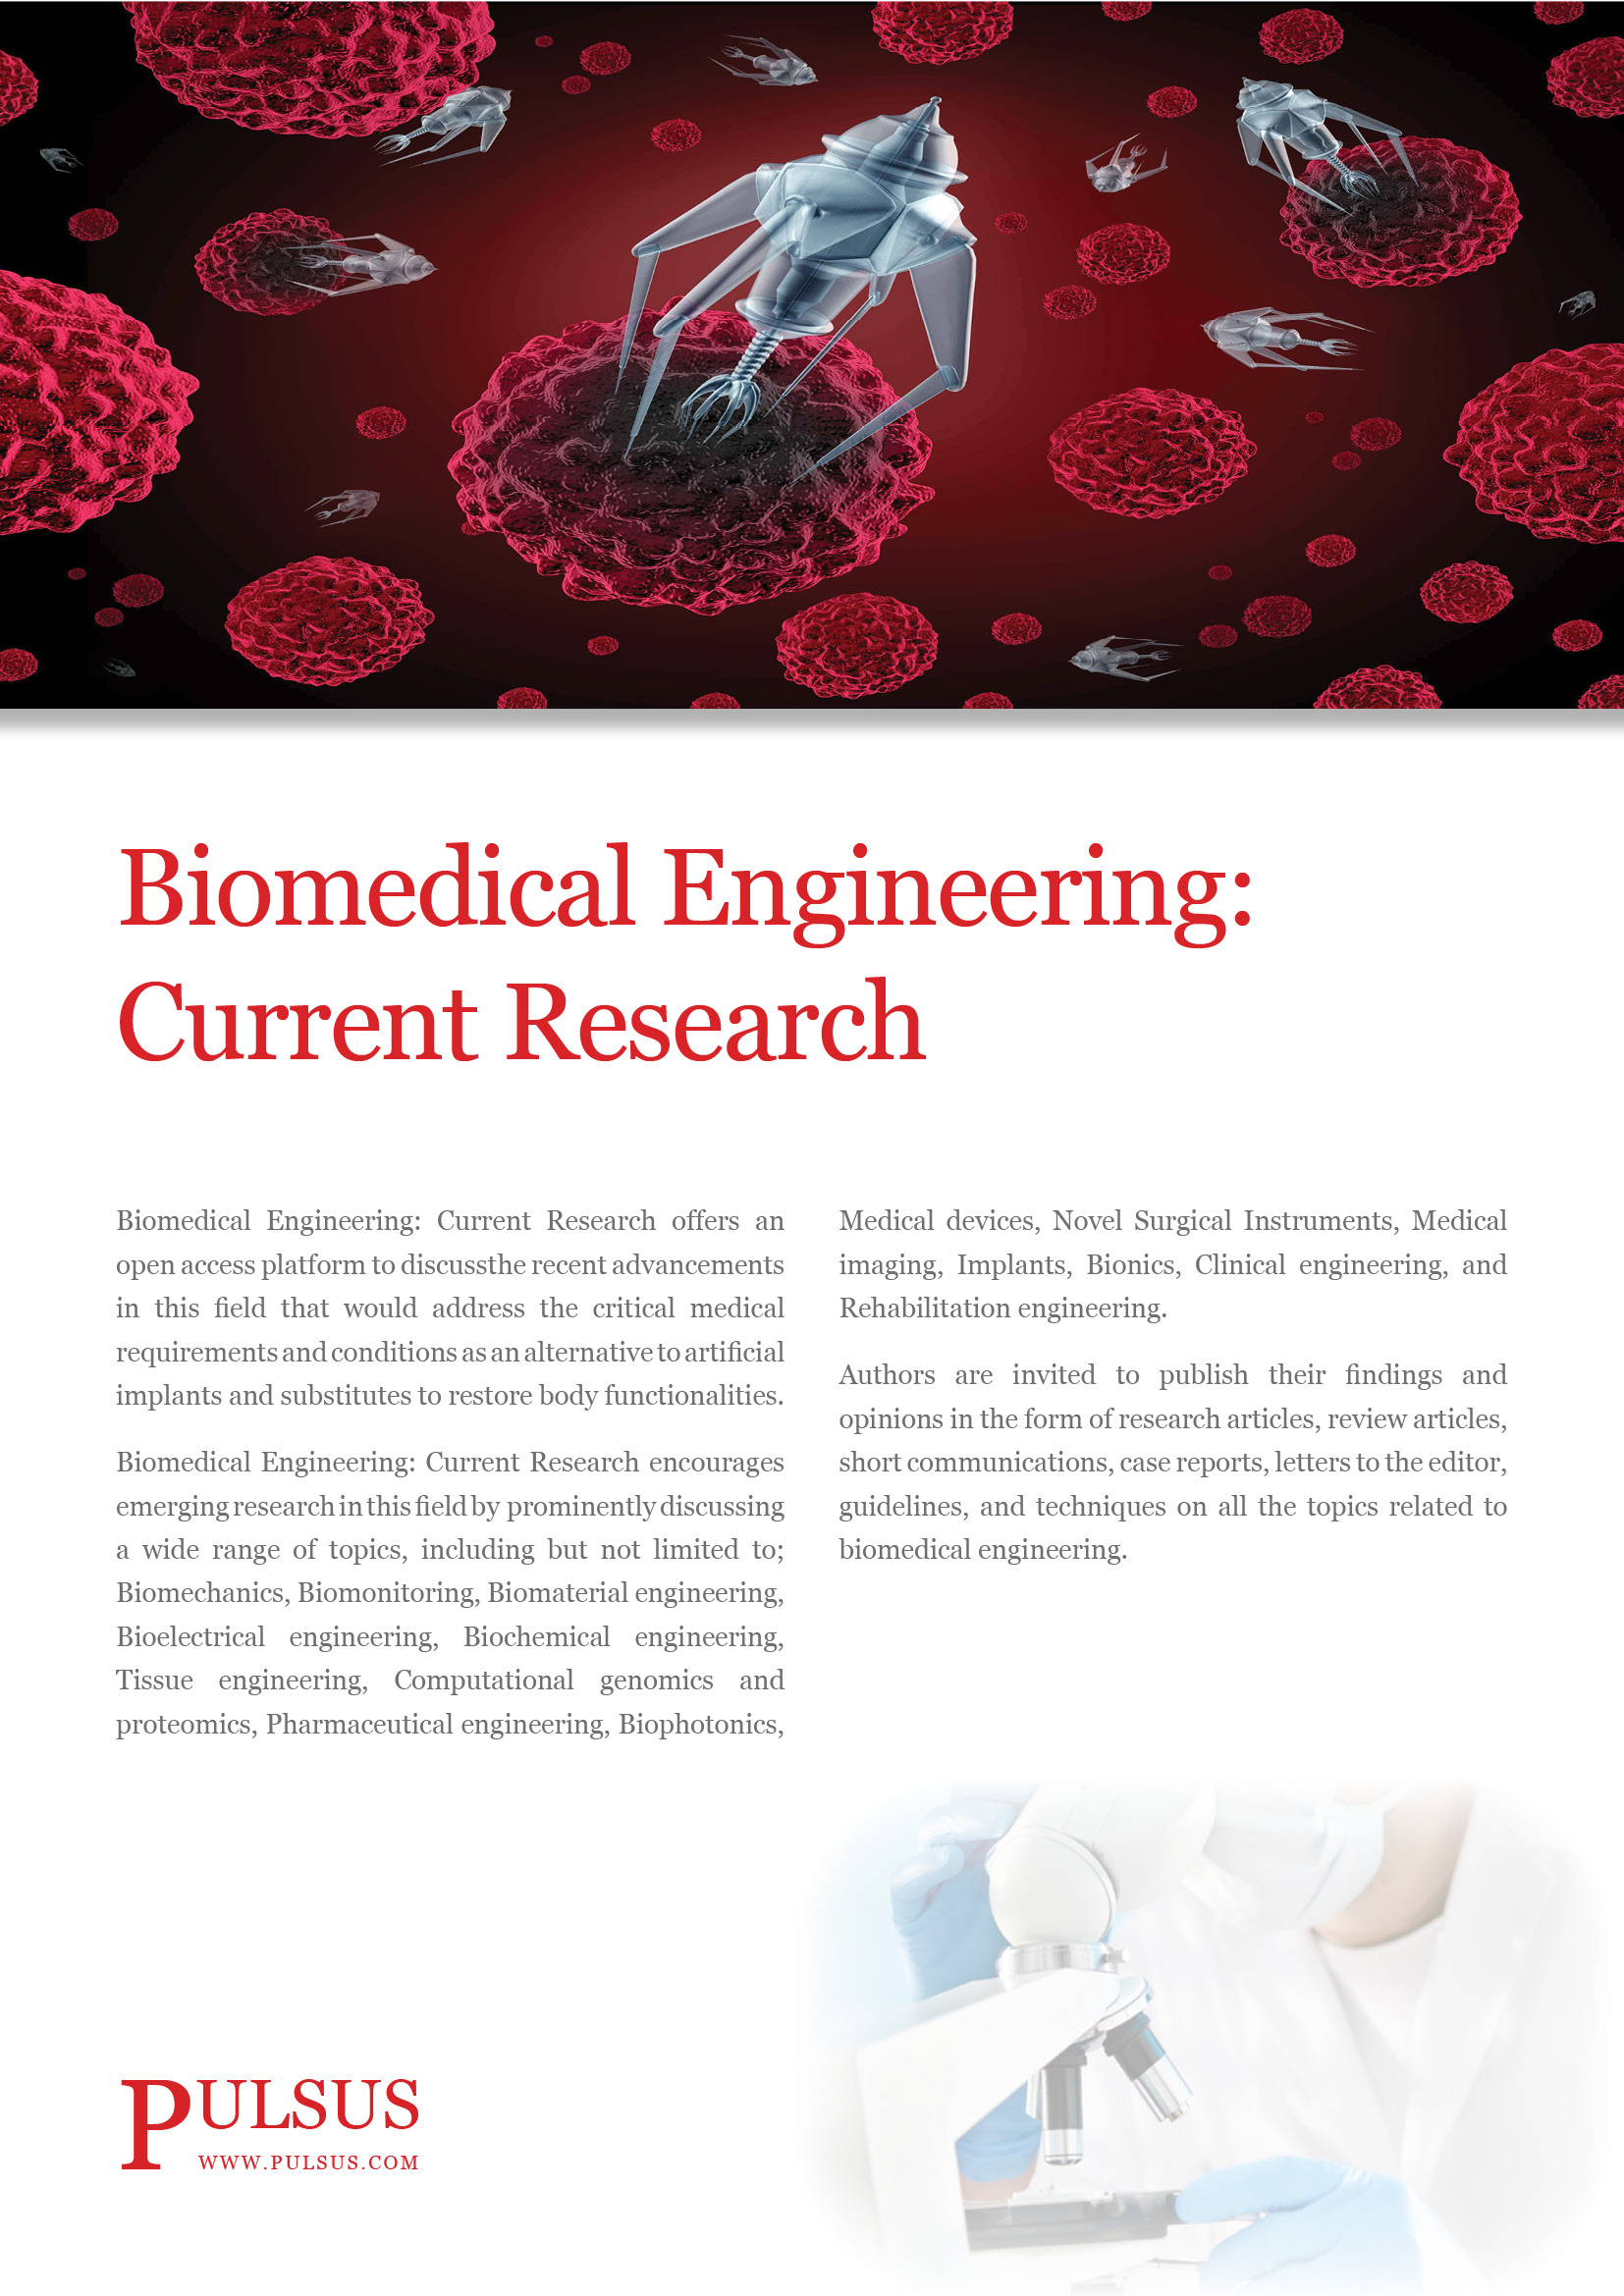 017 Medical Field Topics For Researchs Biomedical Engineering Current Flyer Imposing Research Papers Full